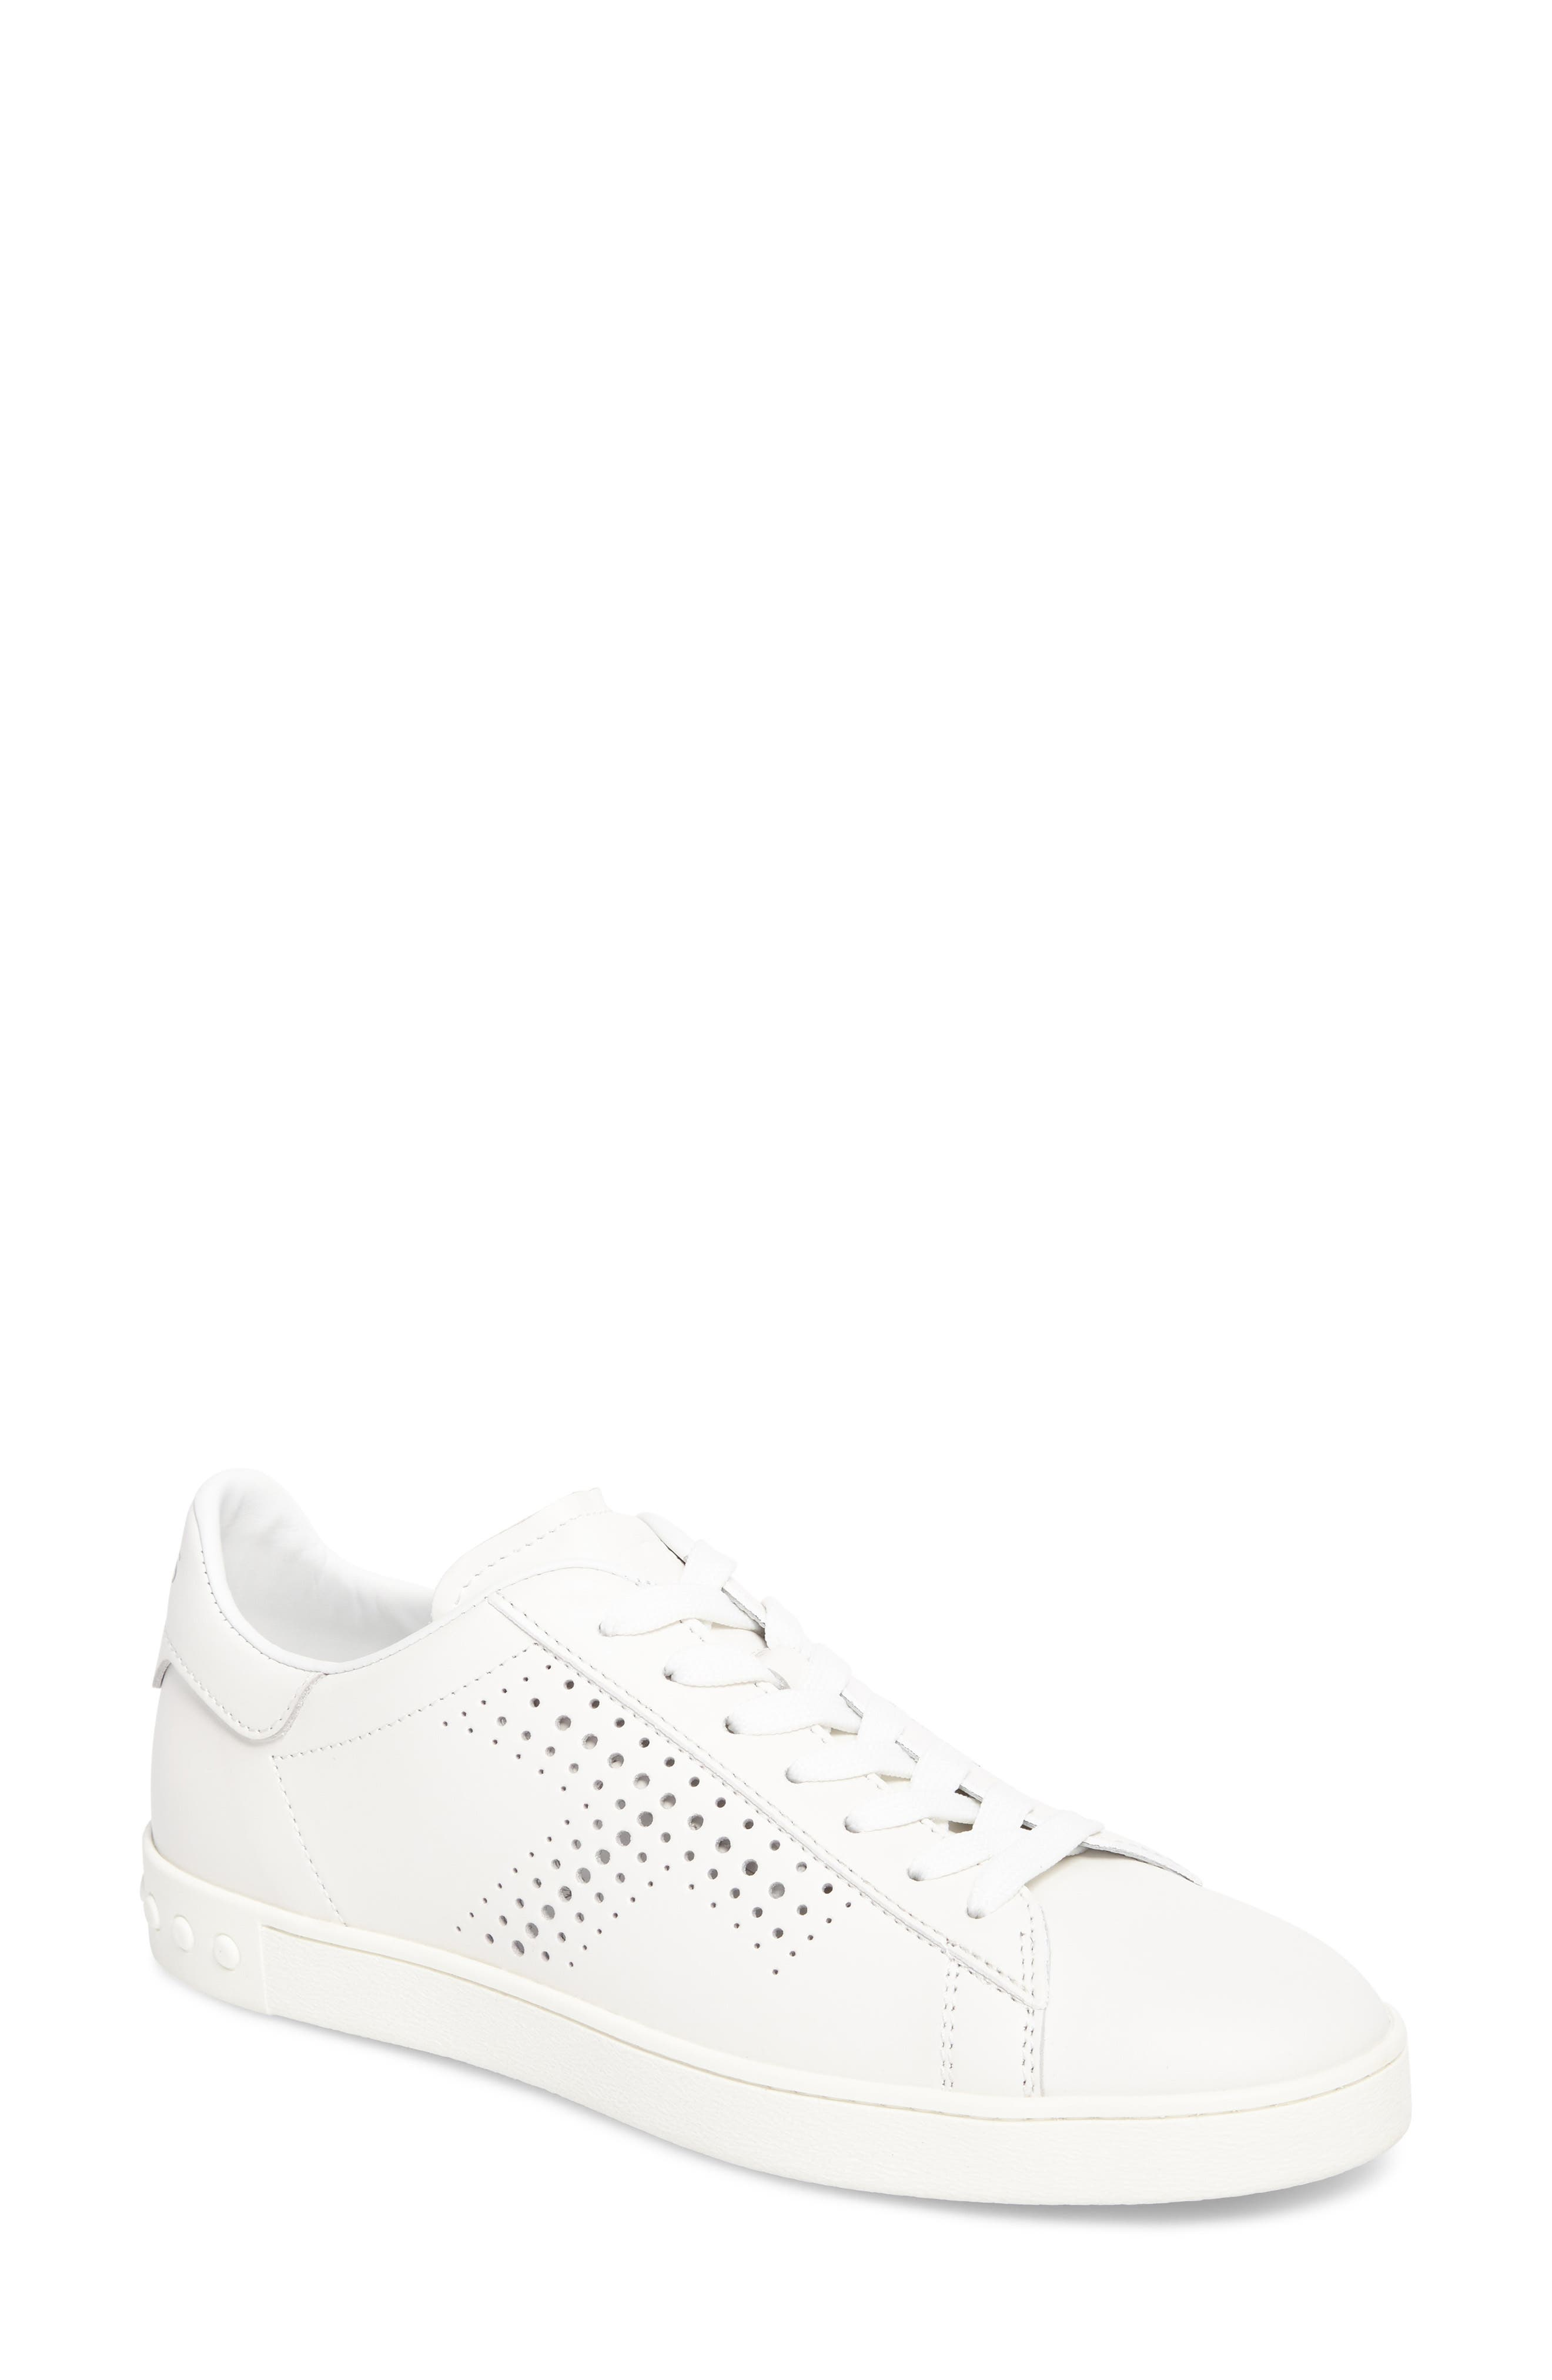 Perforated T Sneaker,                         Main,                         color, 100